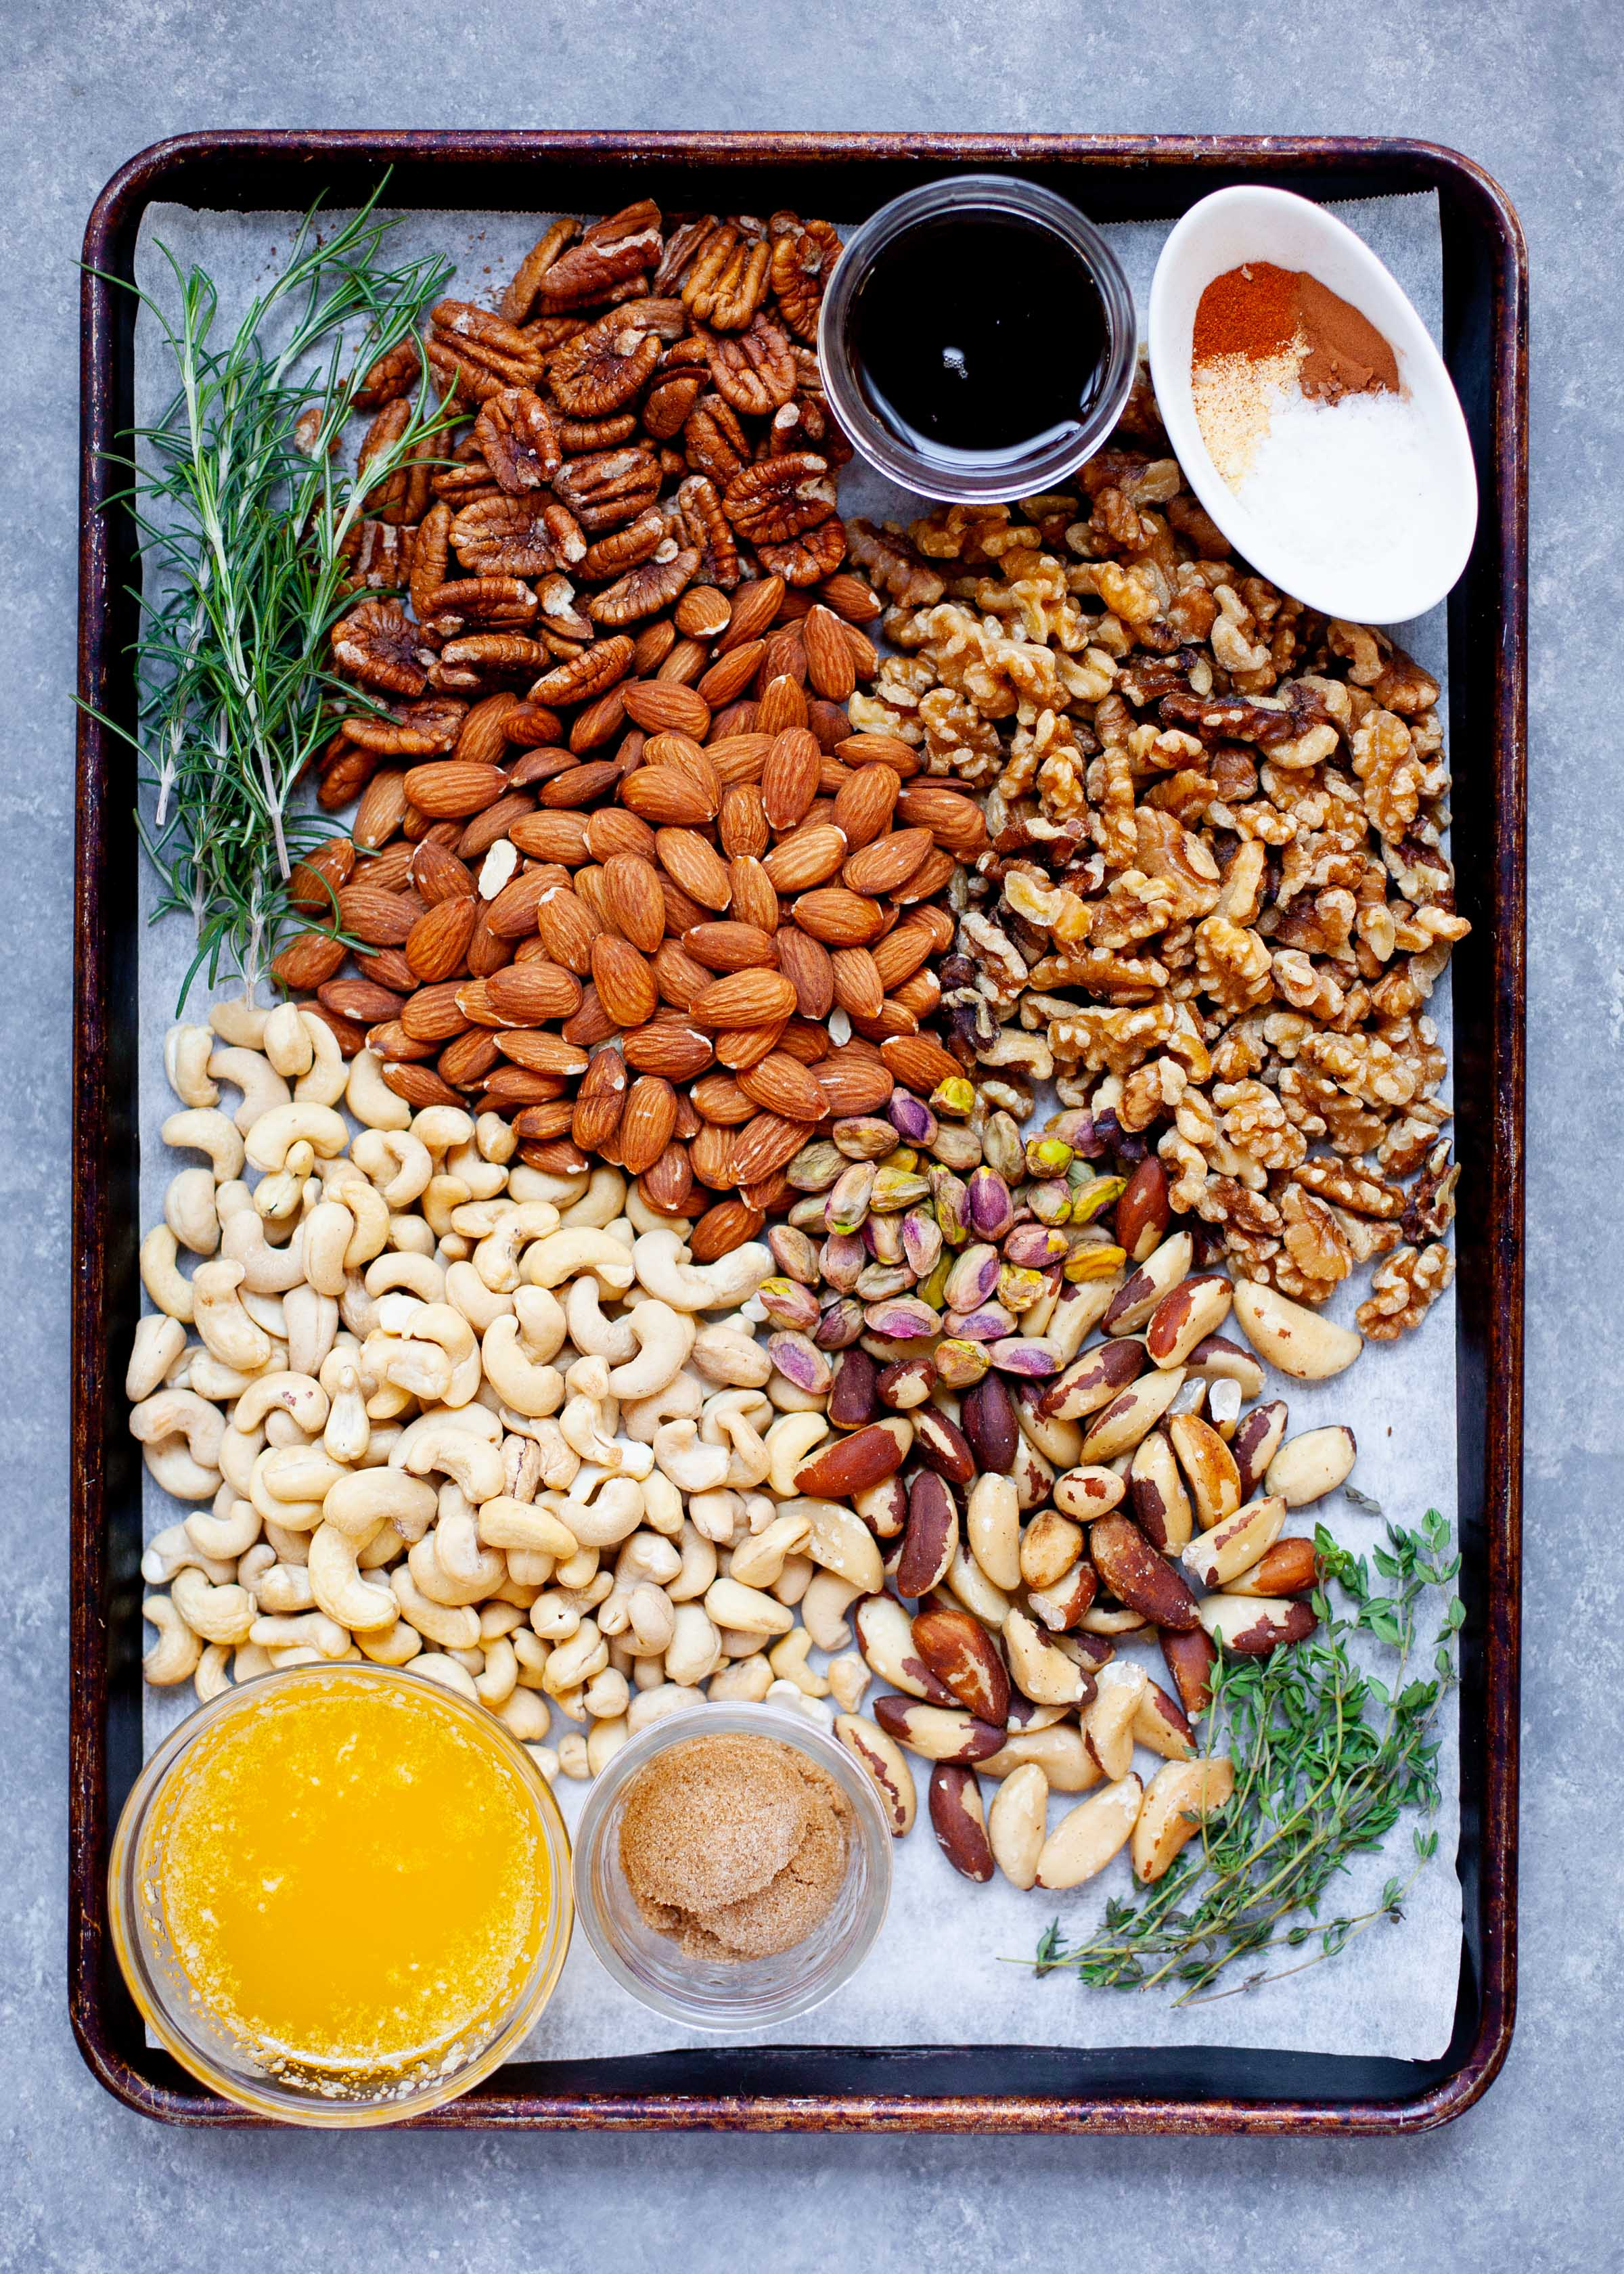 Ingredients for Maple Rosemary Bar Nuts on a white background - various nuts, rosemary, melted butter, brown sugar, rosemary, and spices